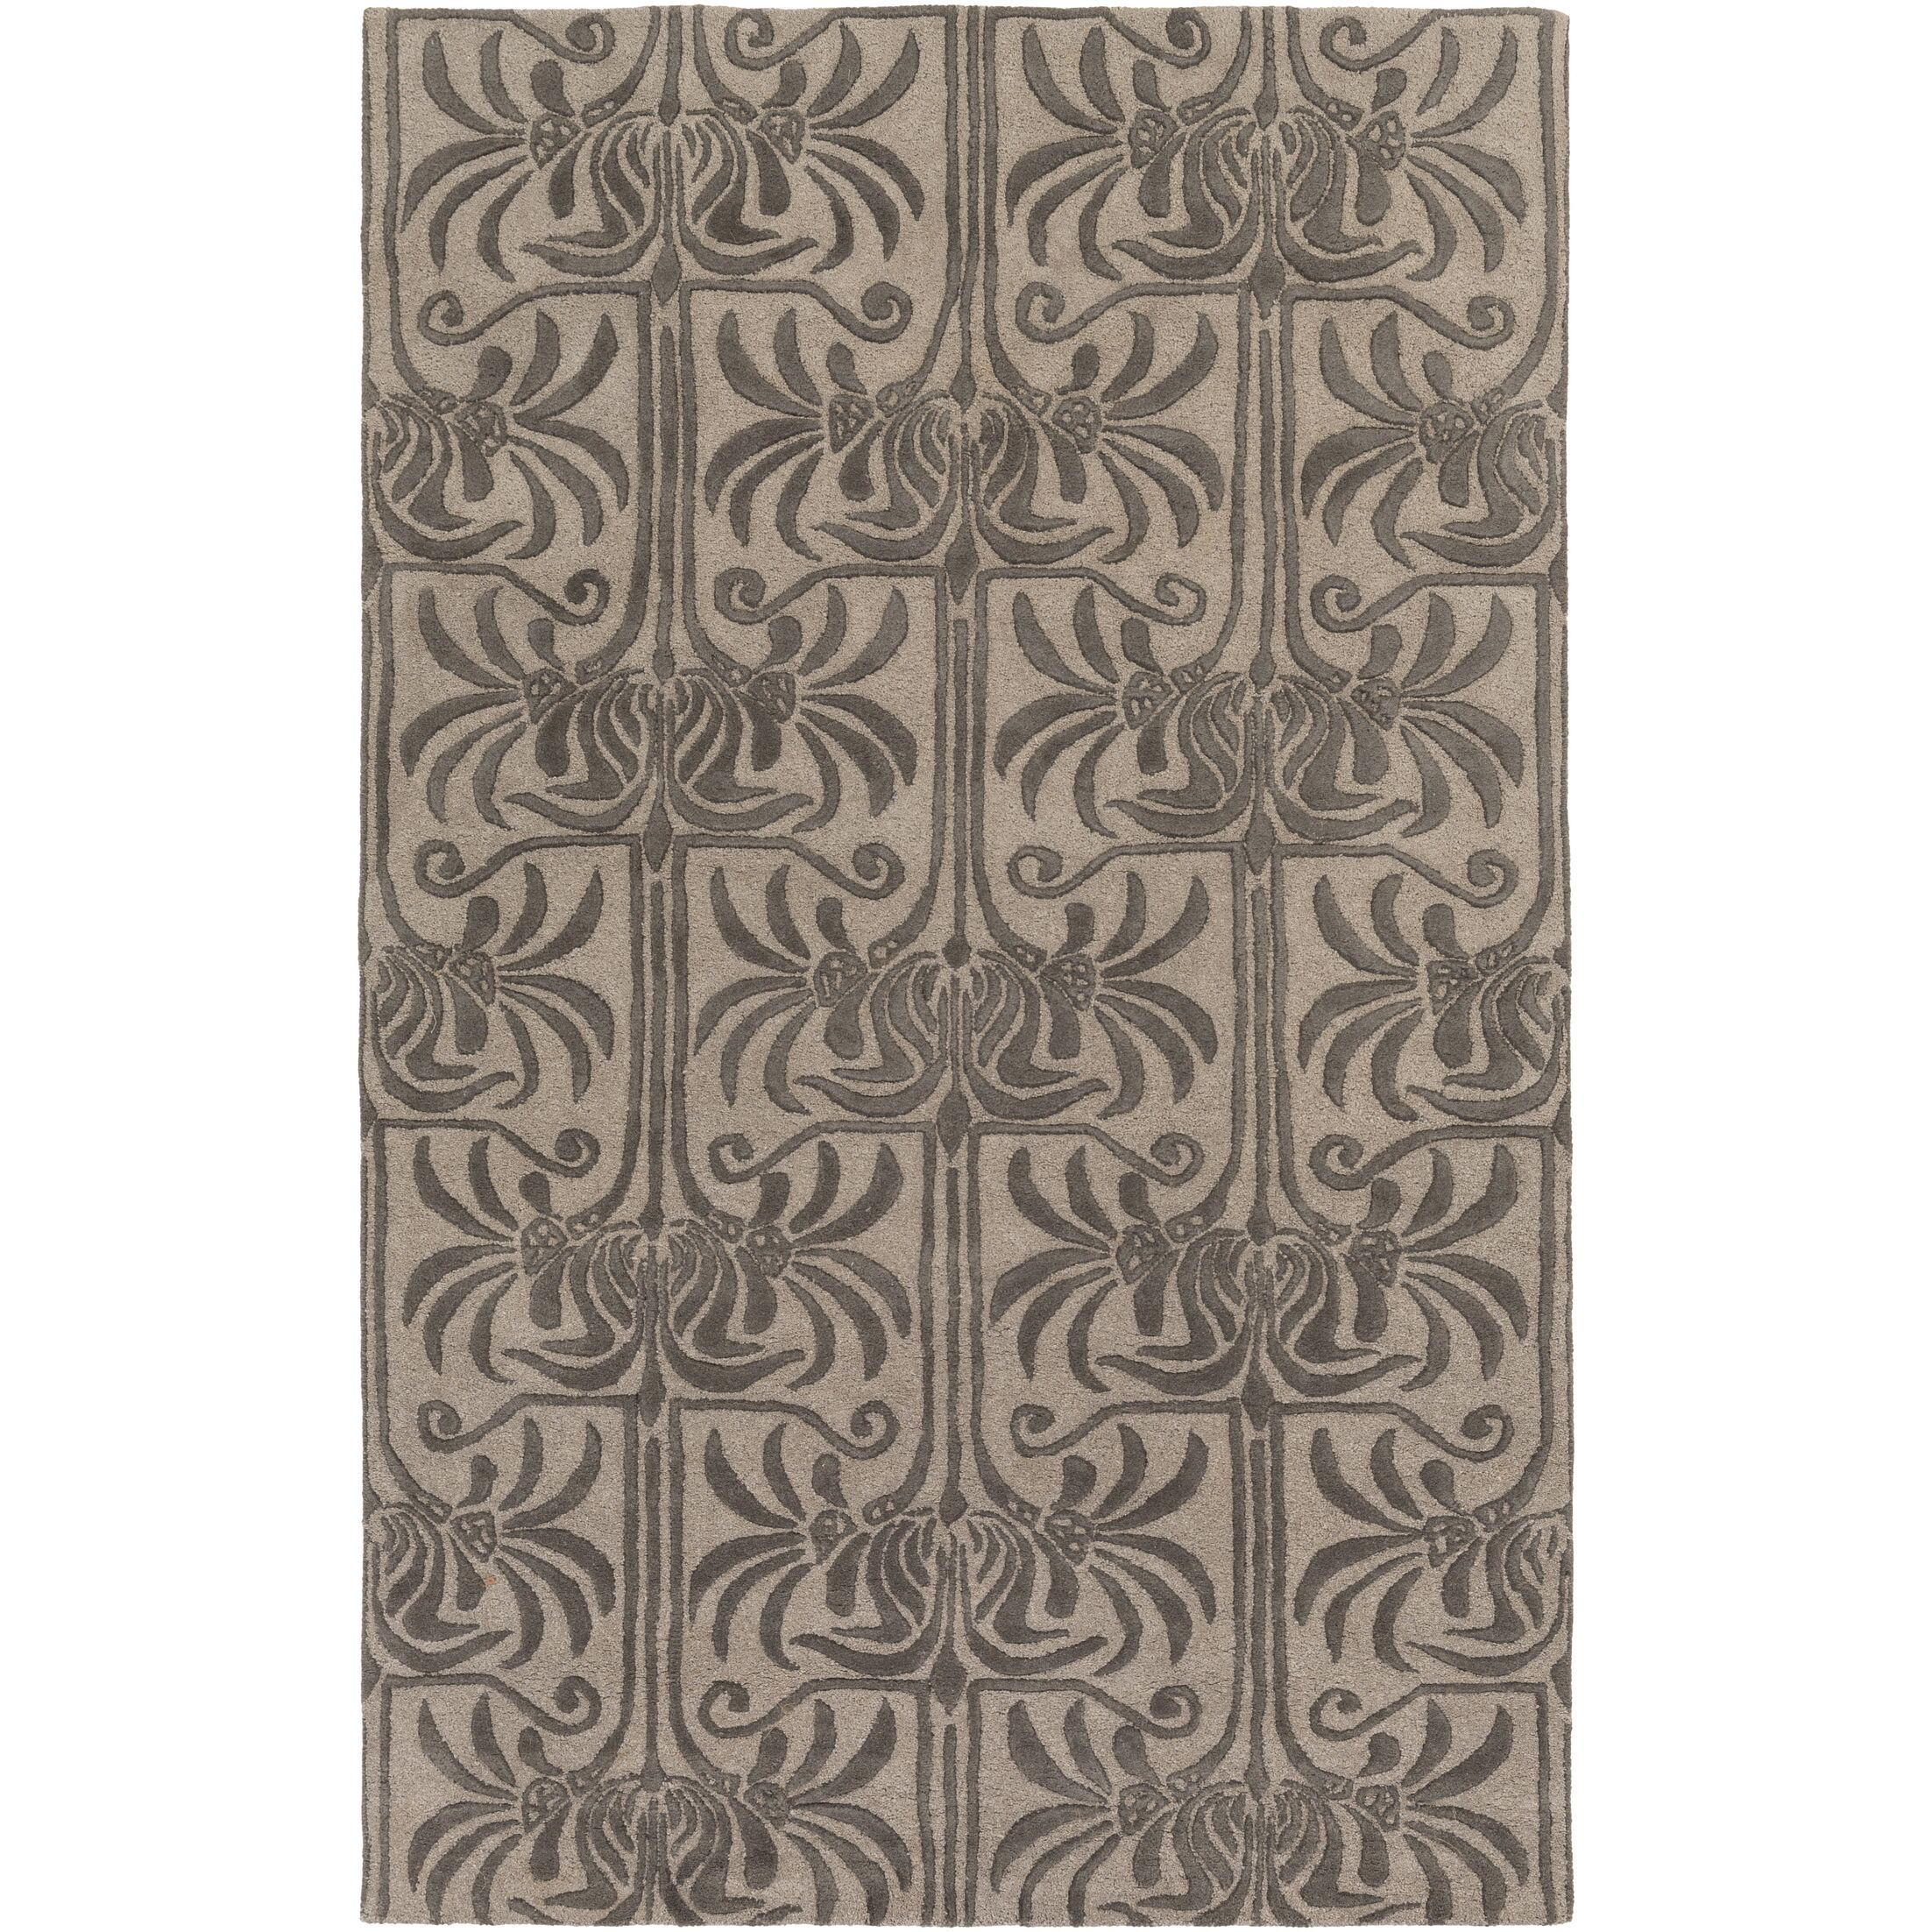 Bartell Hand-Tufted Black/Ivory Area Rug Rug Size: Rectangle 8' x 11'